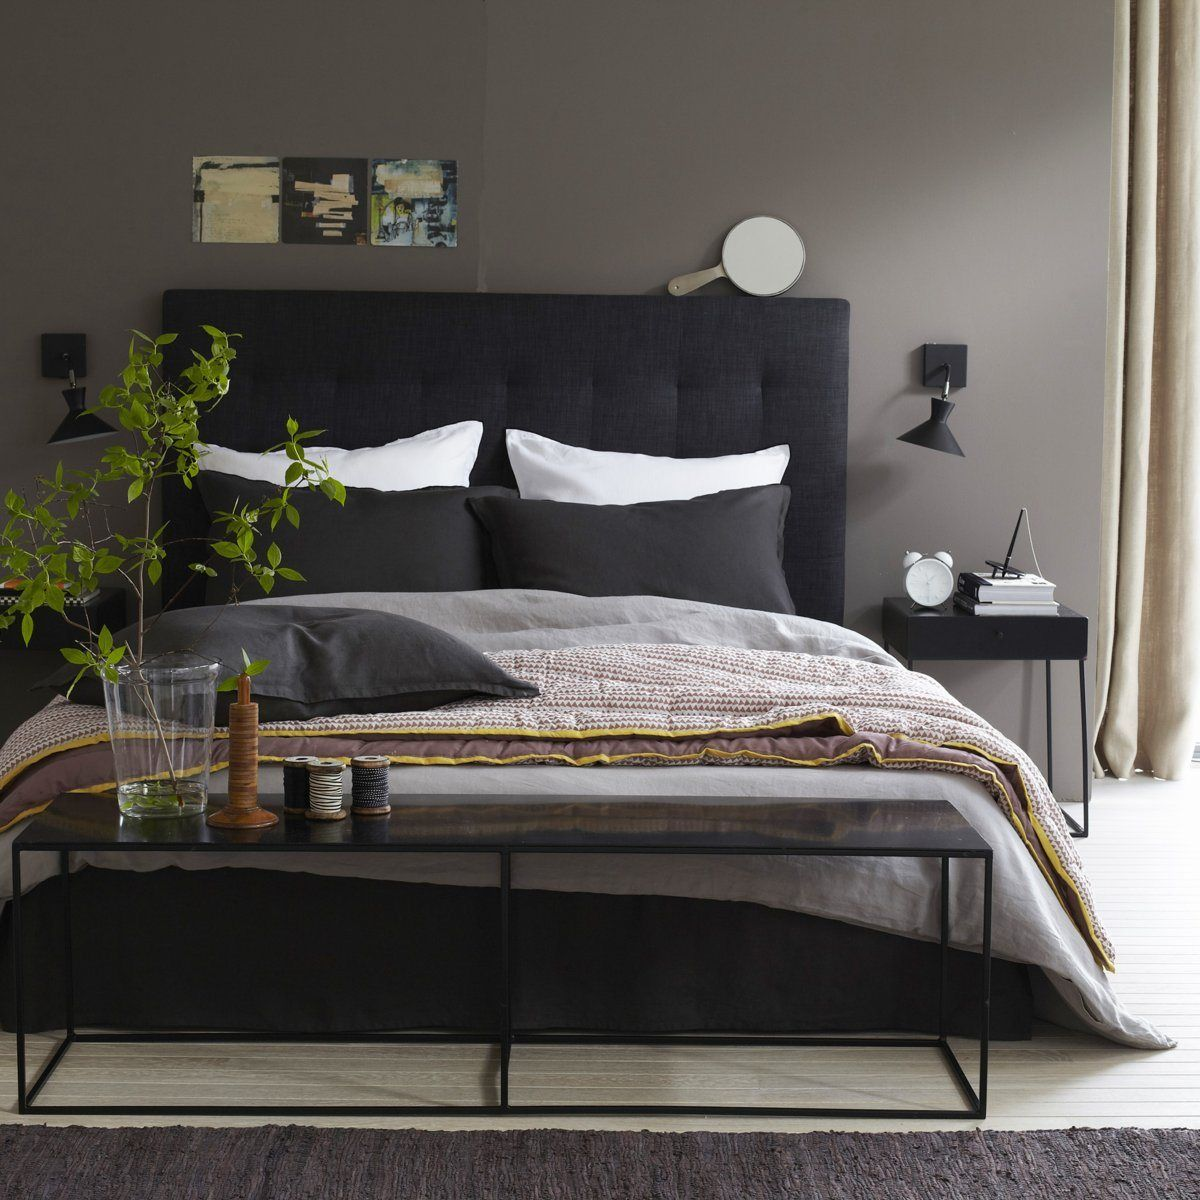 banc bout de lit m tal romy lit metal bout de lit et t te de lit capitonn e. Black Bedroom Furniture Sets. Home Design Ideas